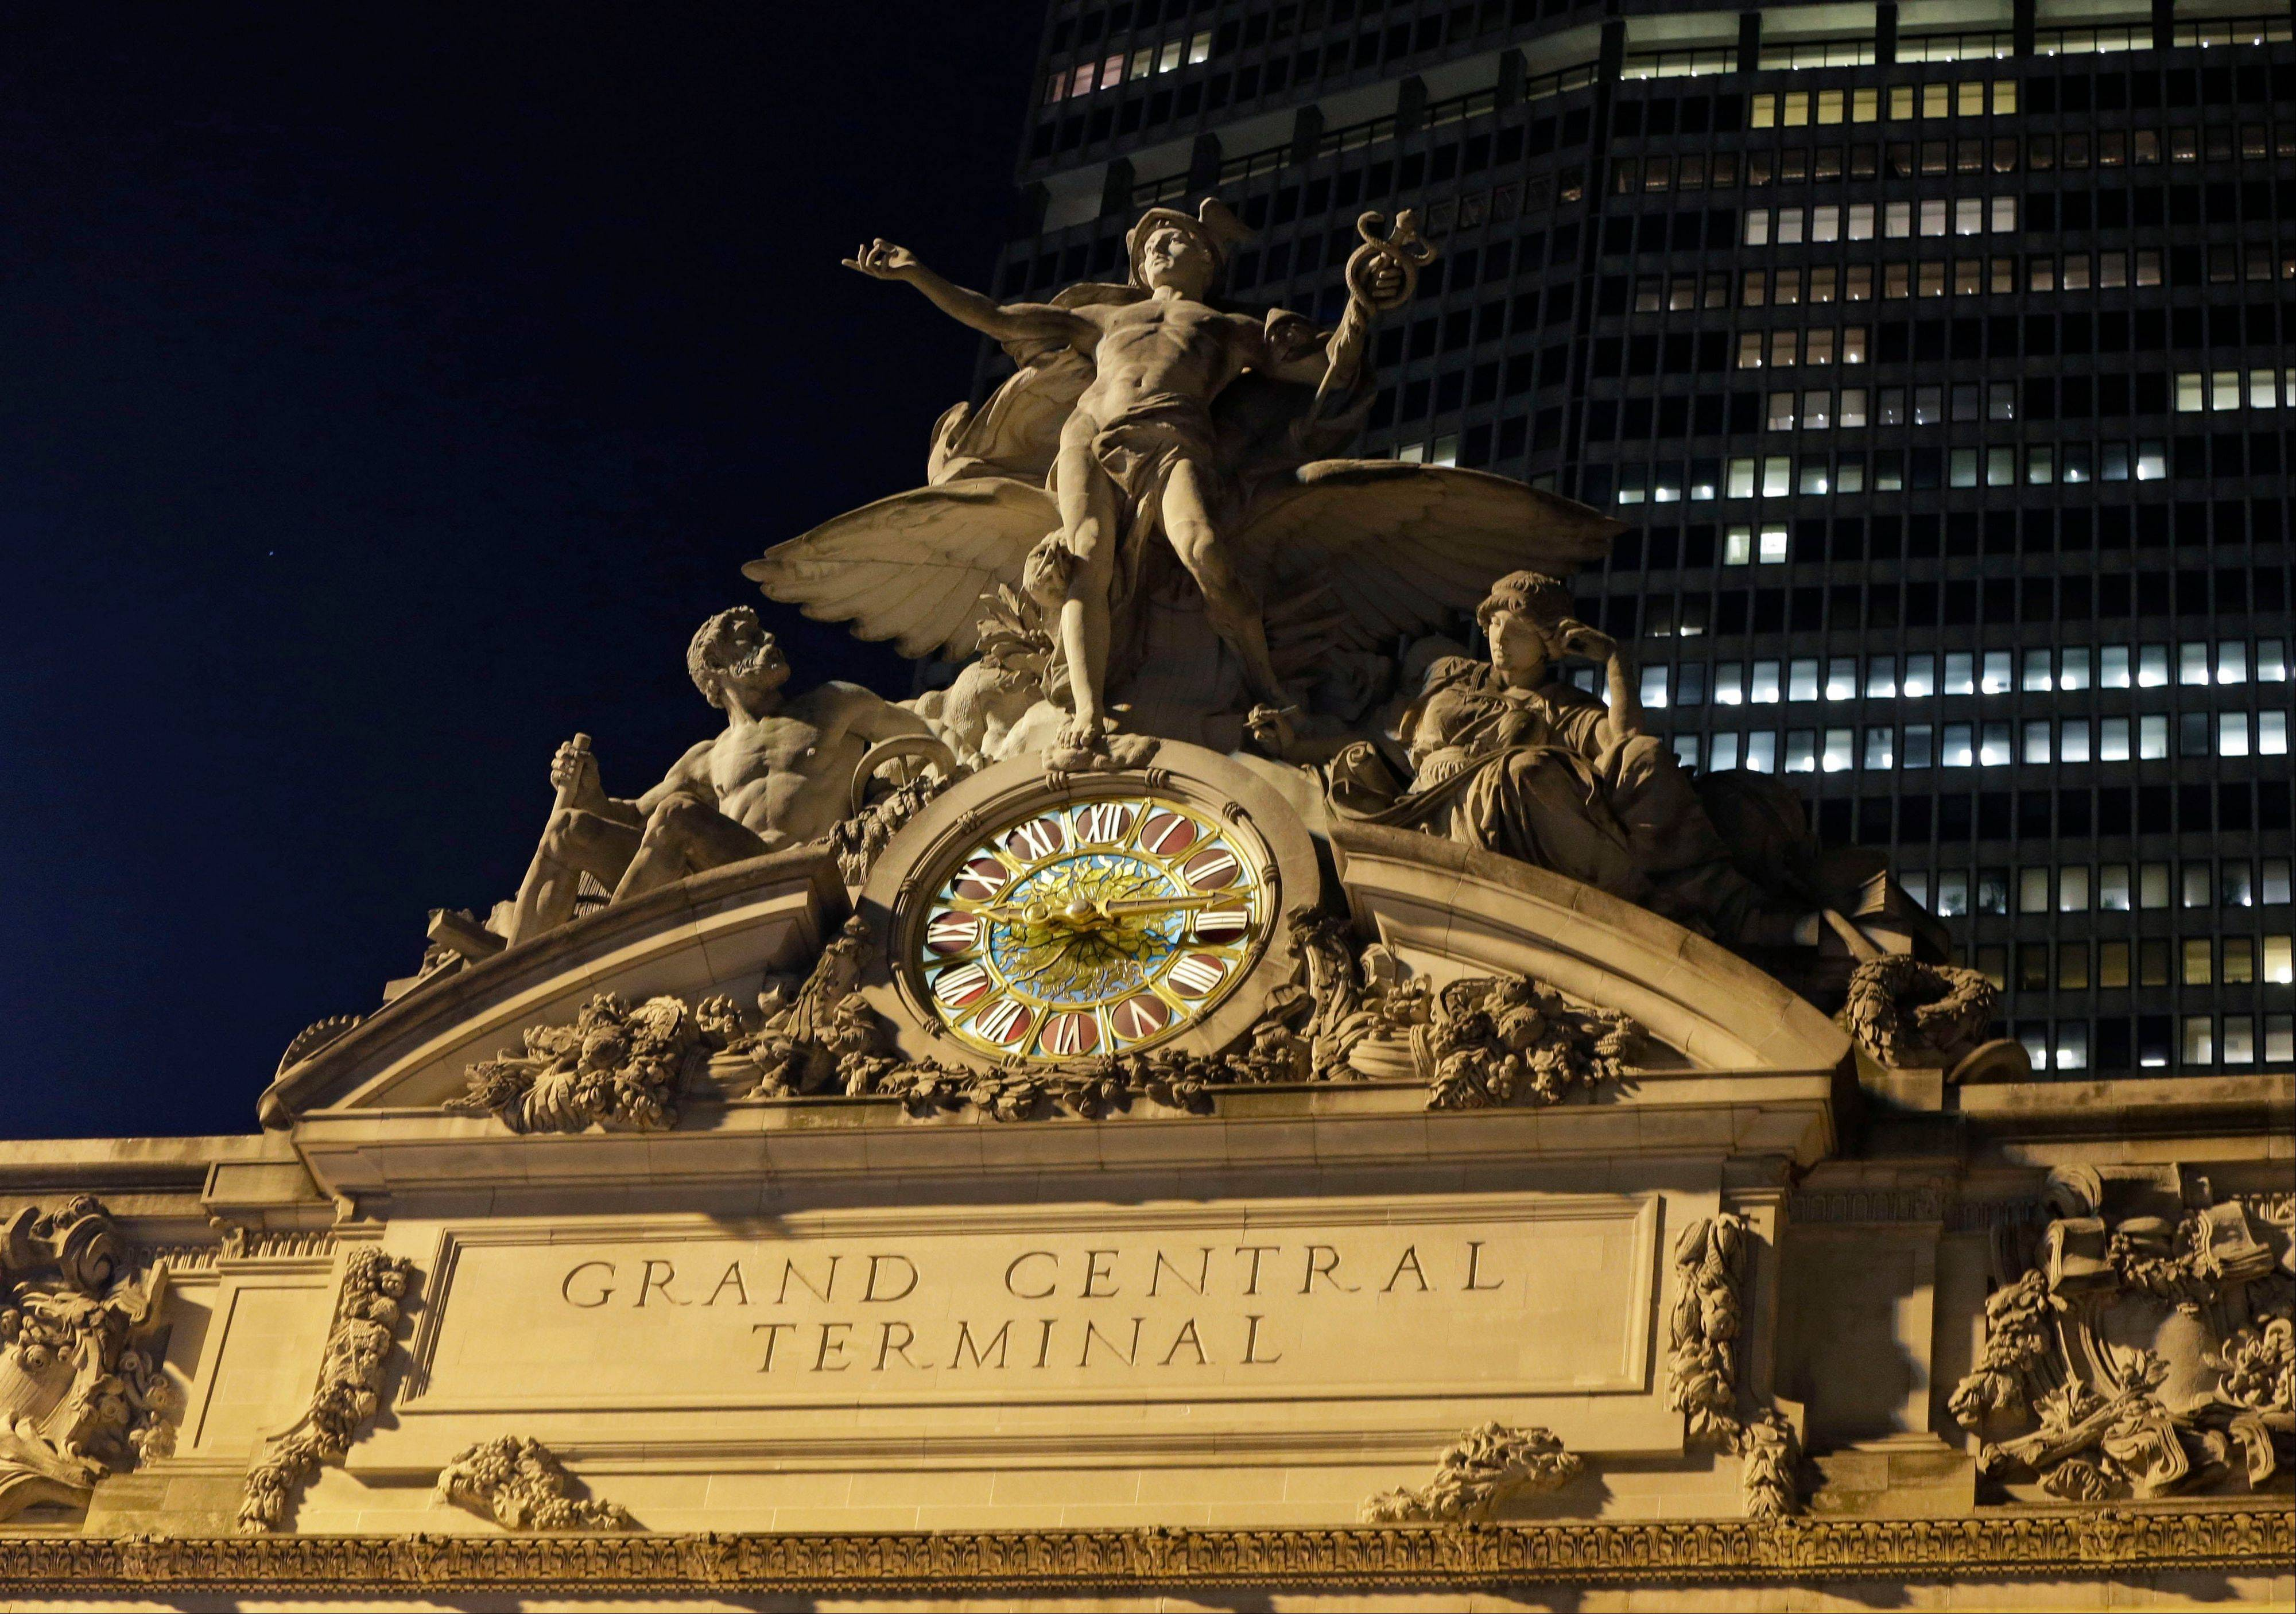 The mythological figures Hercules, Mercury and Minerva adorn the main facade of Grand Central Terminal, part of a sculptural group created by Jules Alexis, atop the terminal in New York.